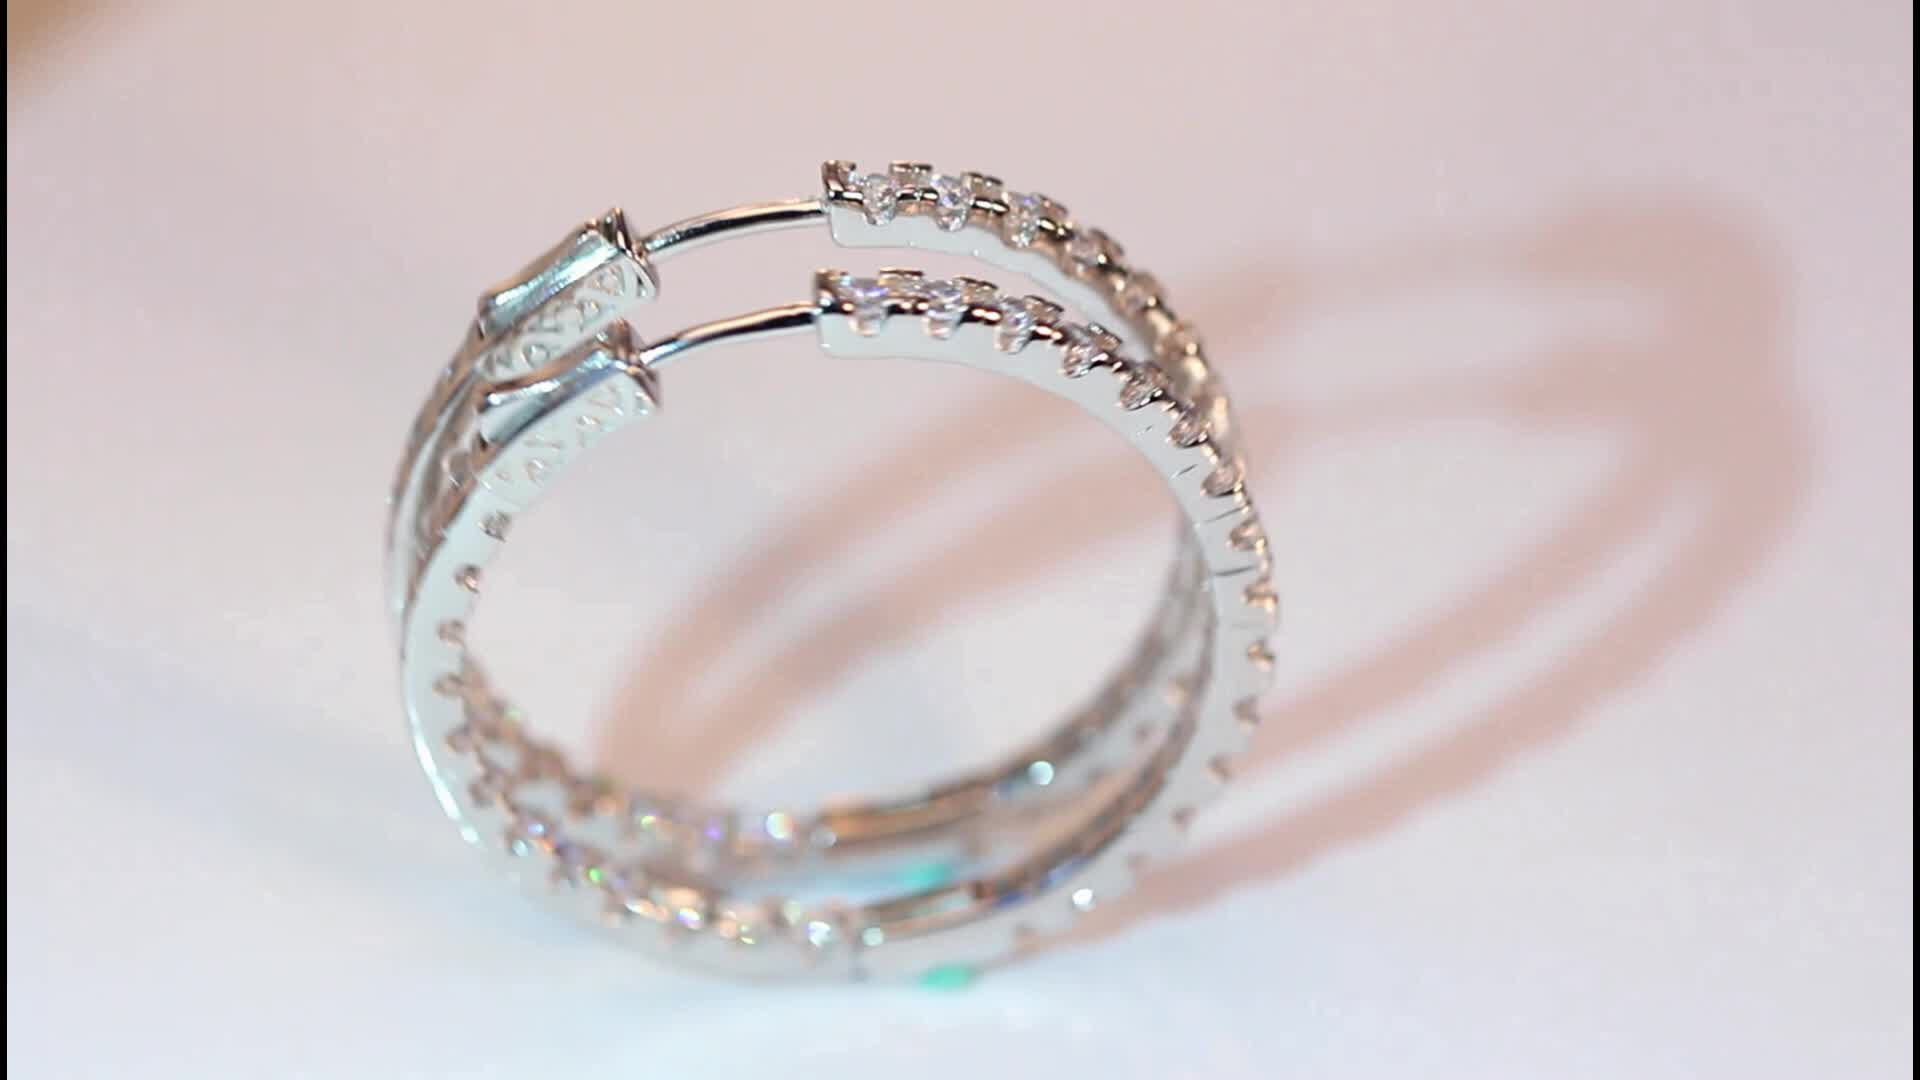 2019 Silver Color High Polished Hoop Earrings Paved with AAA Austrian Cubic Zirconia for Wedding Party Jewelry RIE137